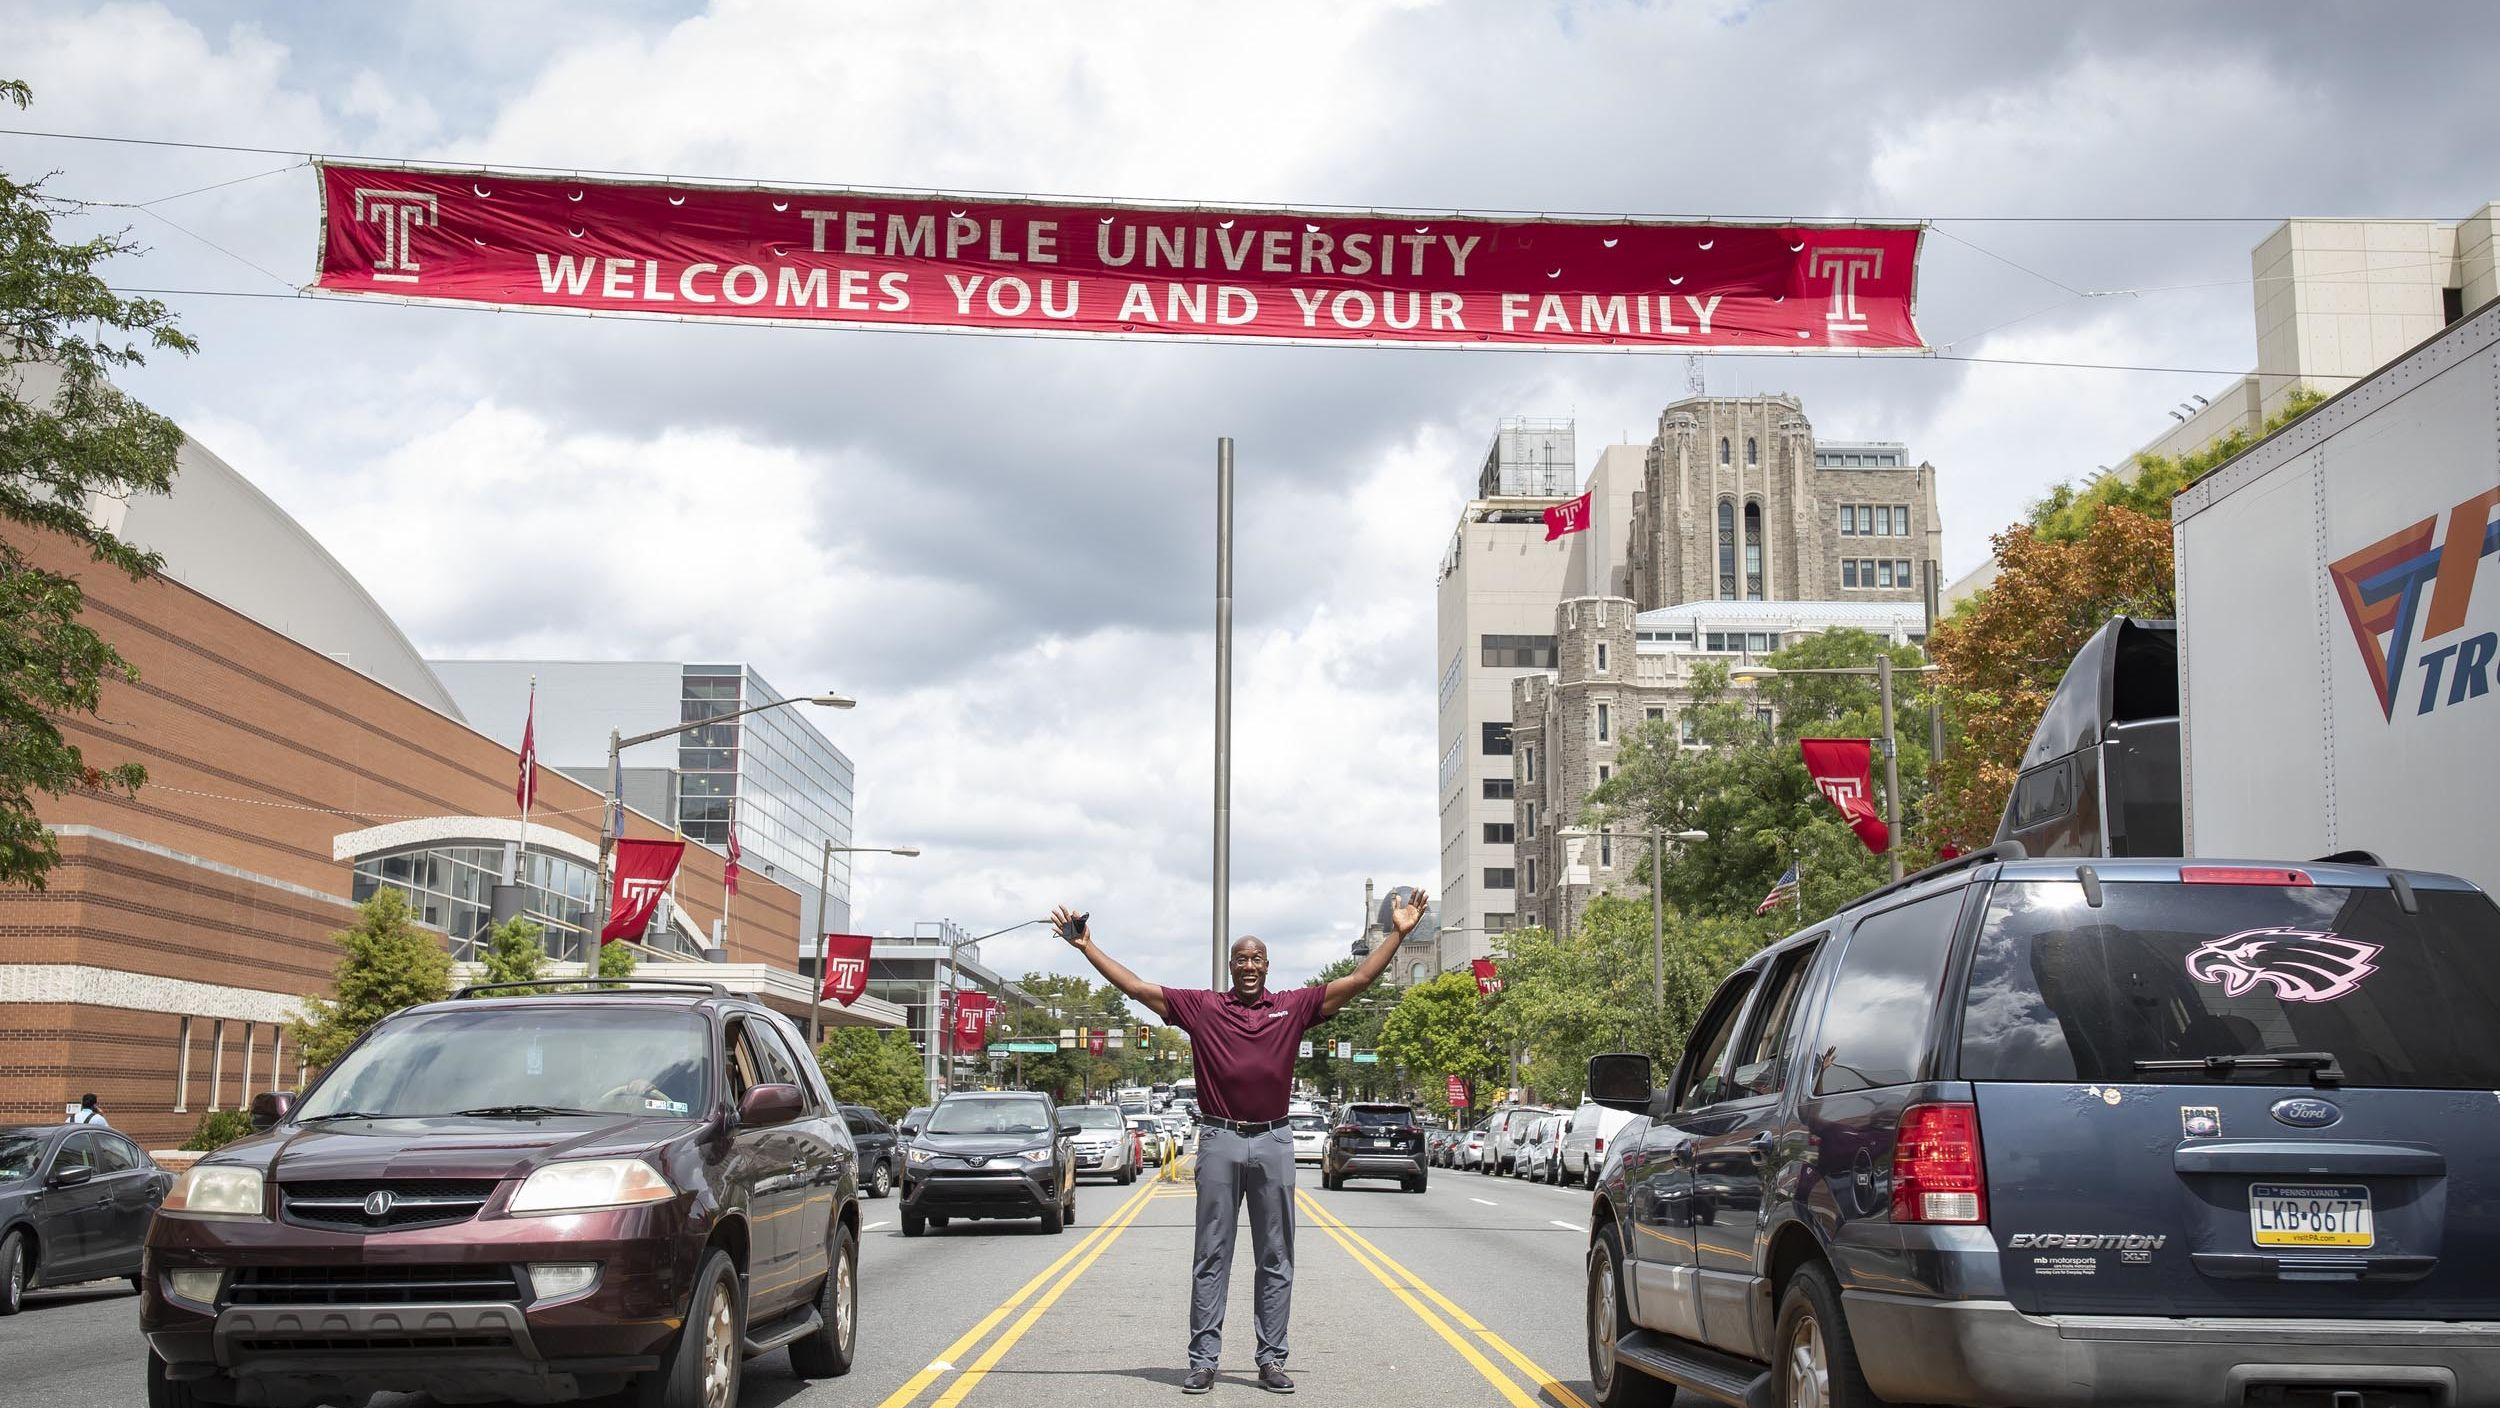 President Wingard with open arms on Broad Street